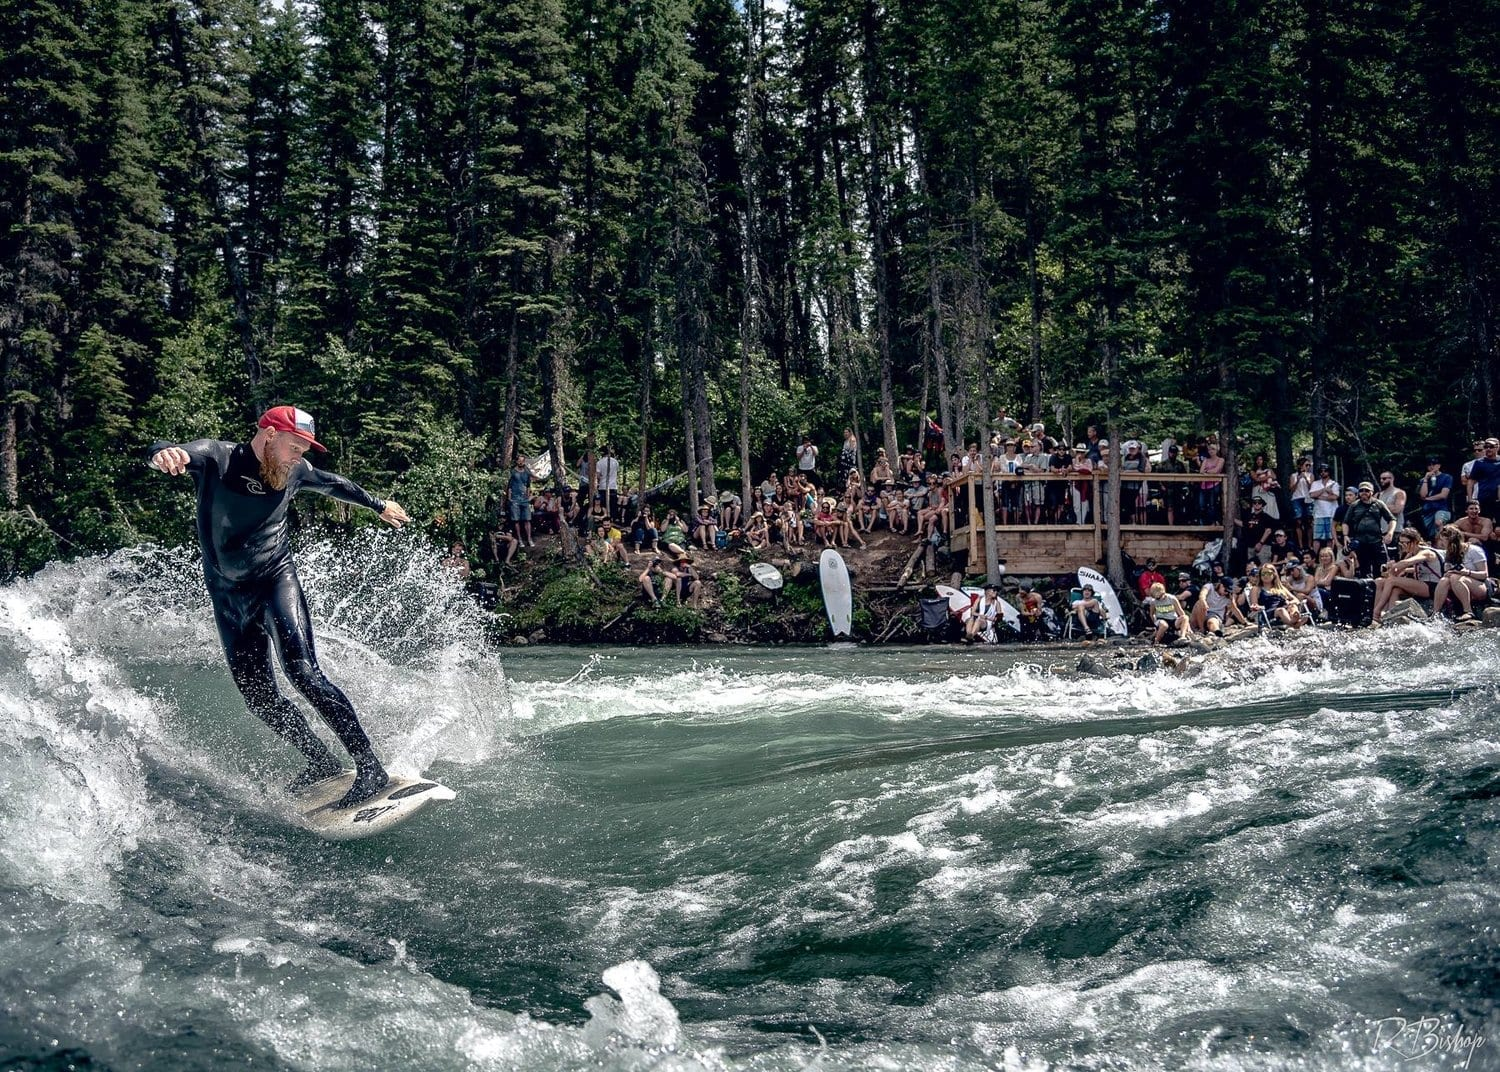 Cochrane River Wave Park example of Mountain Wave facility